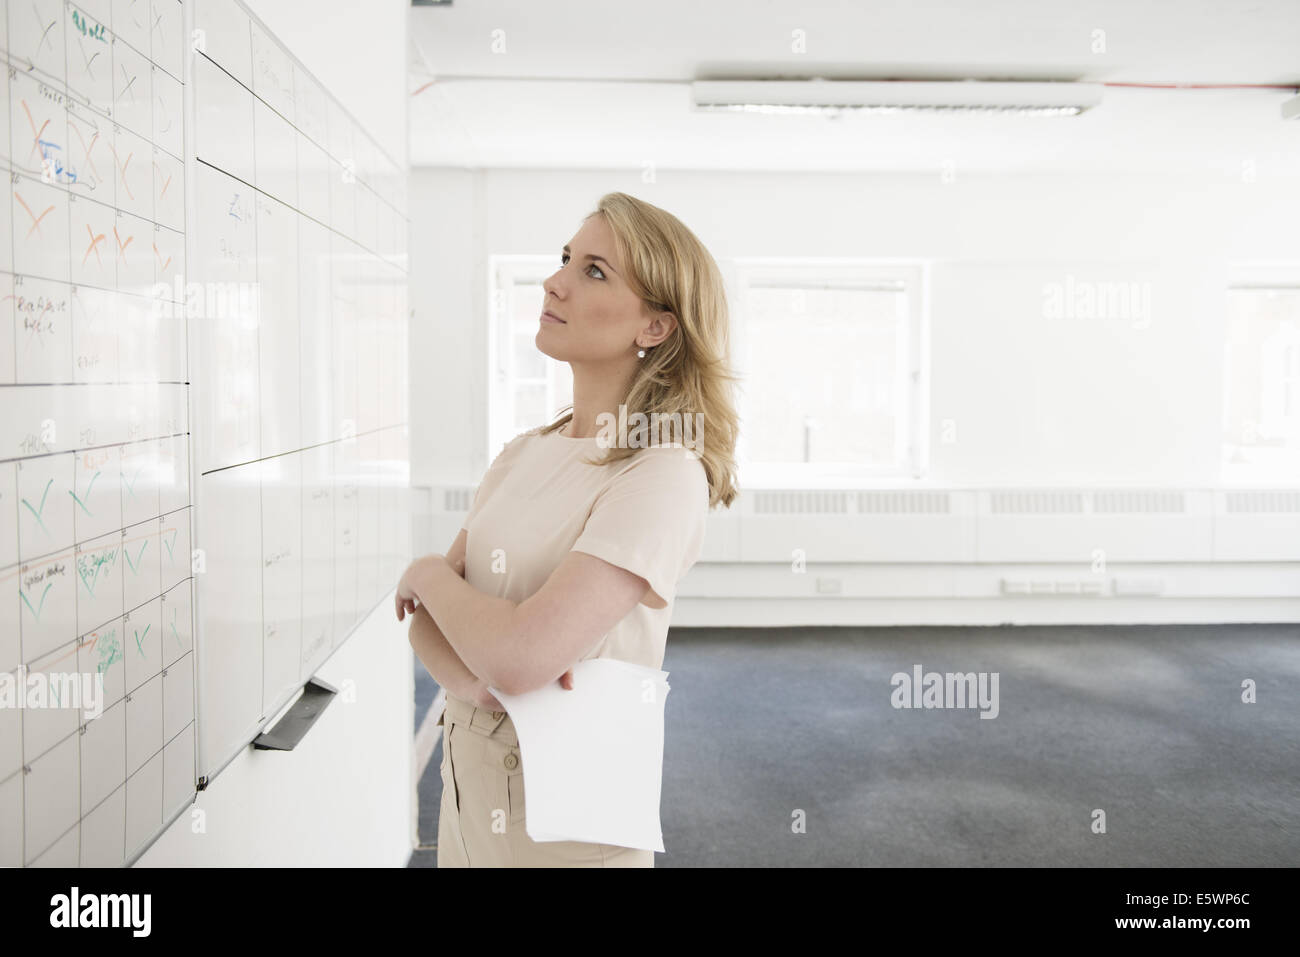 Young businesswoman contemplating whiteboard in empty office - Stock Image